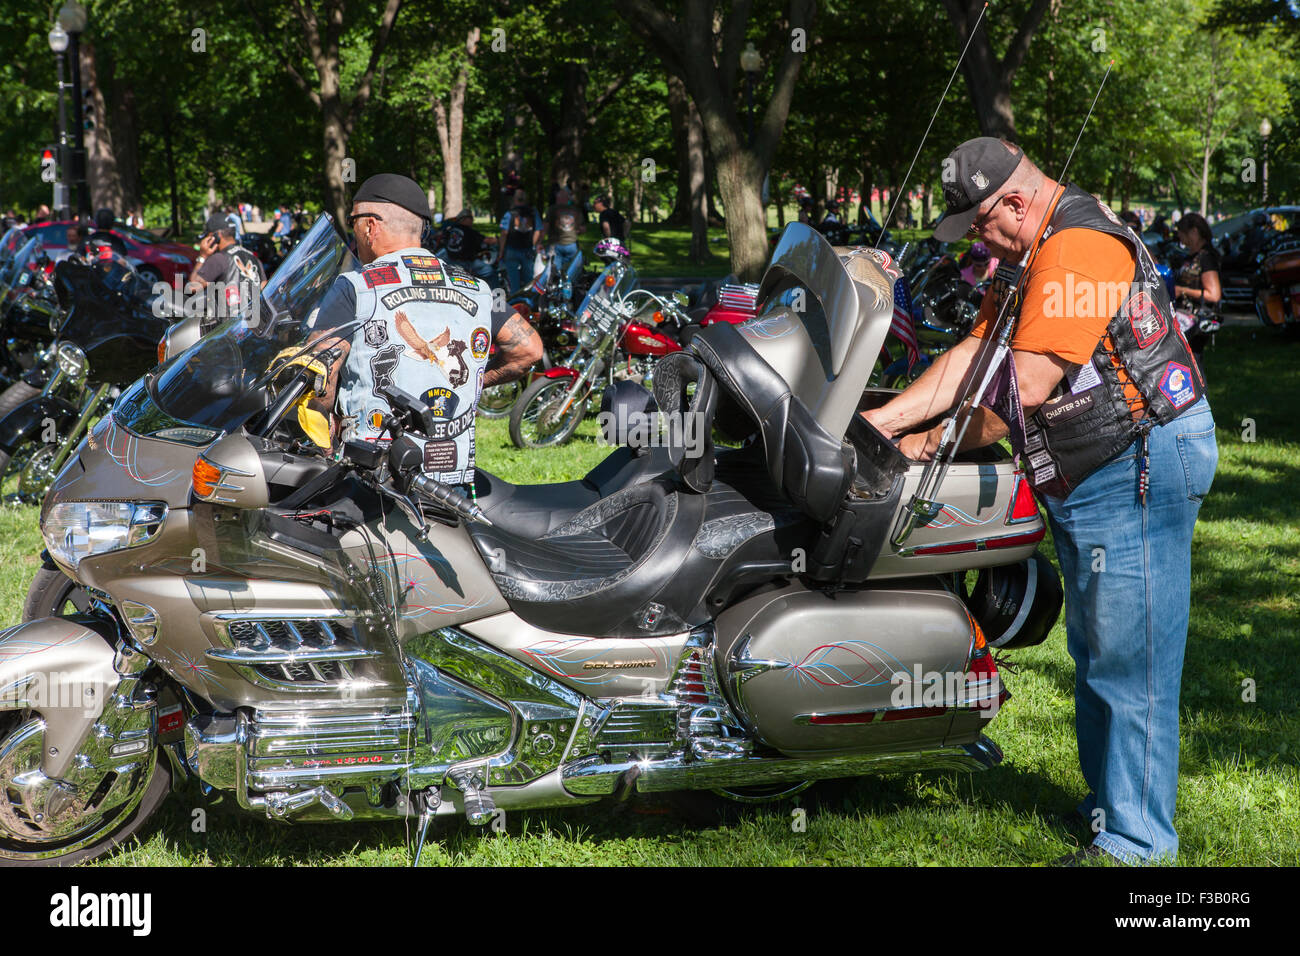 Motorcycle riders near their cycles prior to the Rolling Thunder Ride for Freedom in Washington, DC. - Stock Image